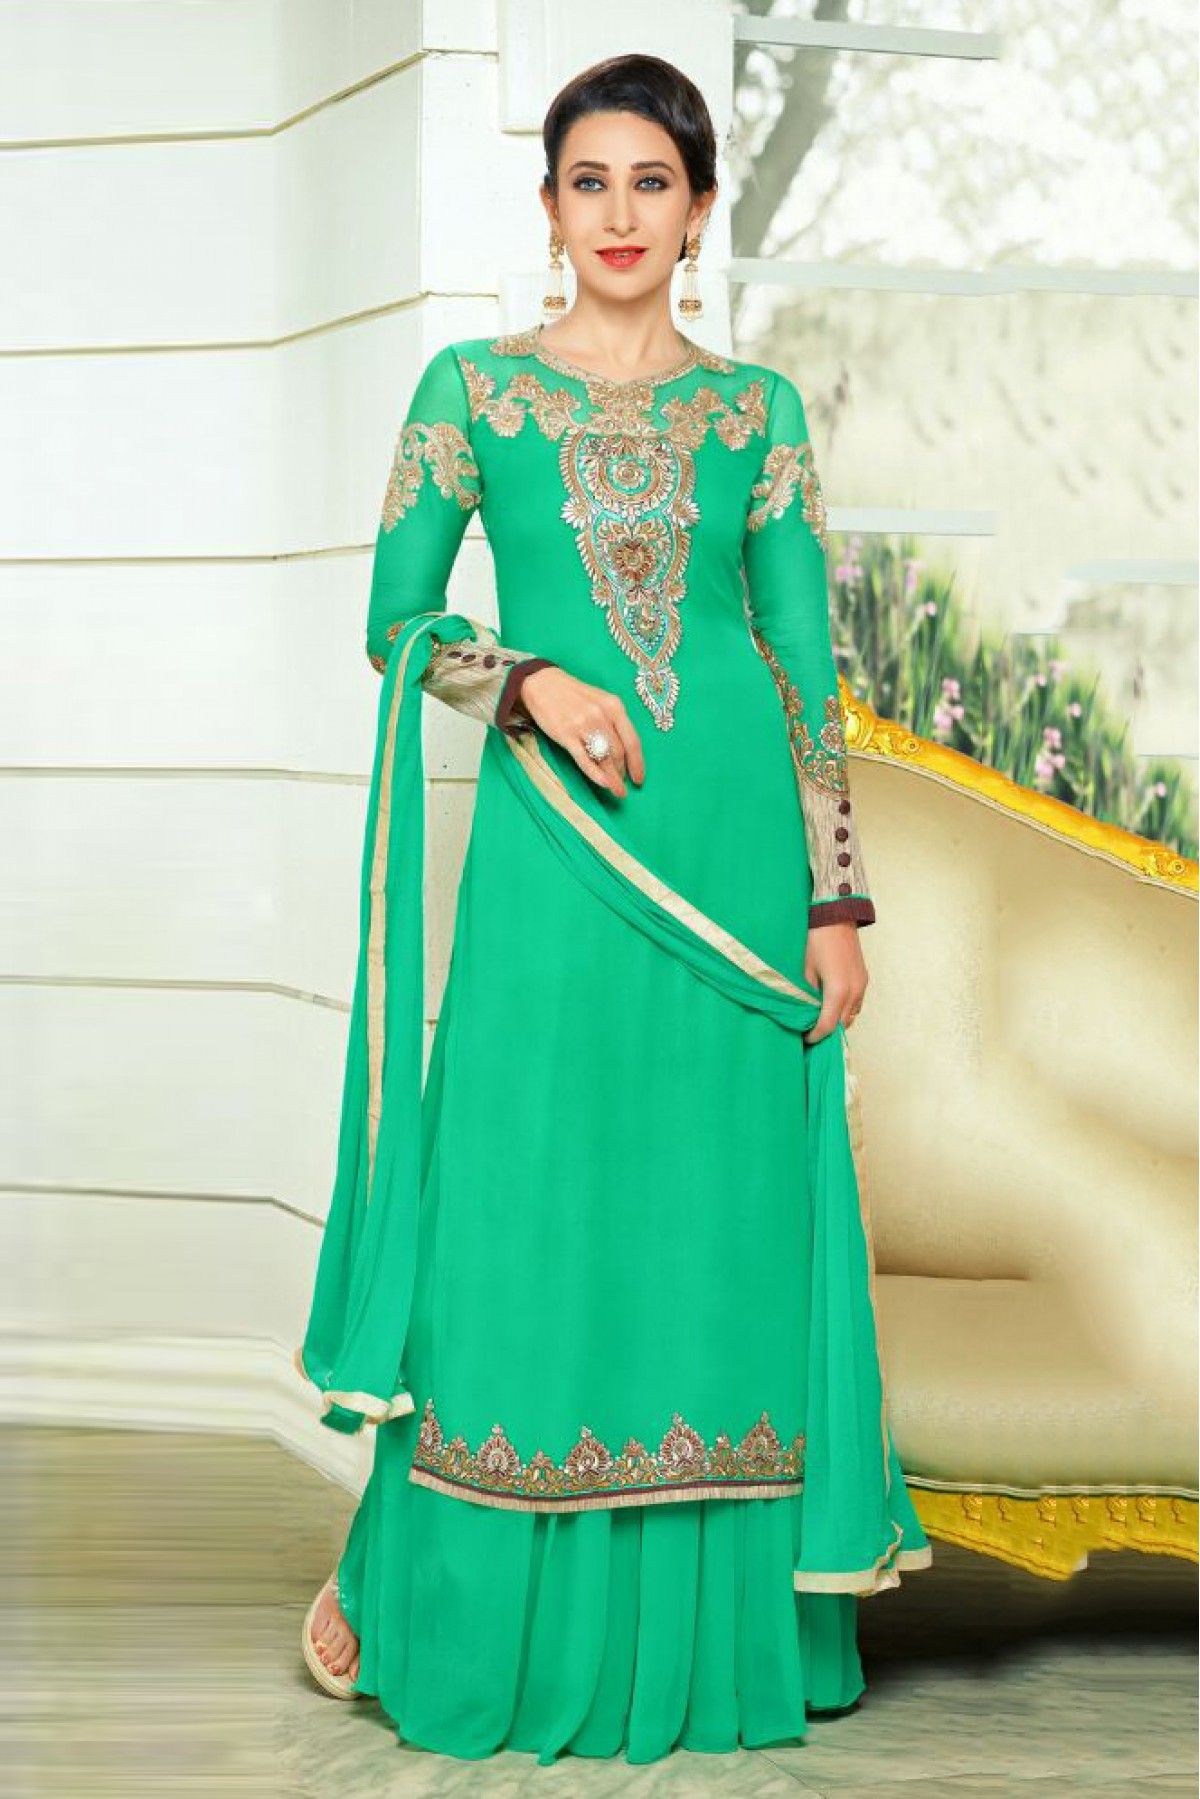 1eee526085 Sea Green Colour Georgette Fabric Designer Semi Stitched Anarkali Salwar  Kameez Comes With Matching Dupatta and Bottom Fabric. This Suit Is Crafted  With ...